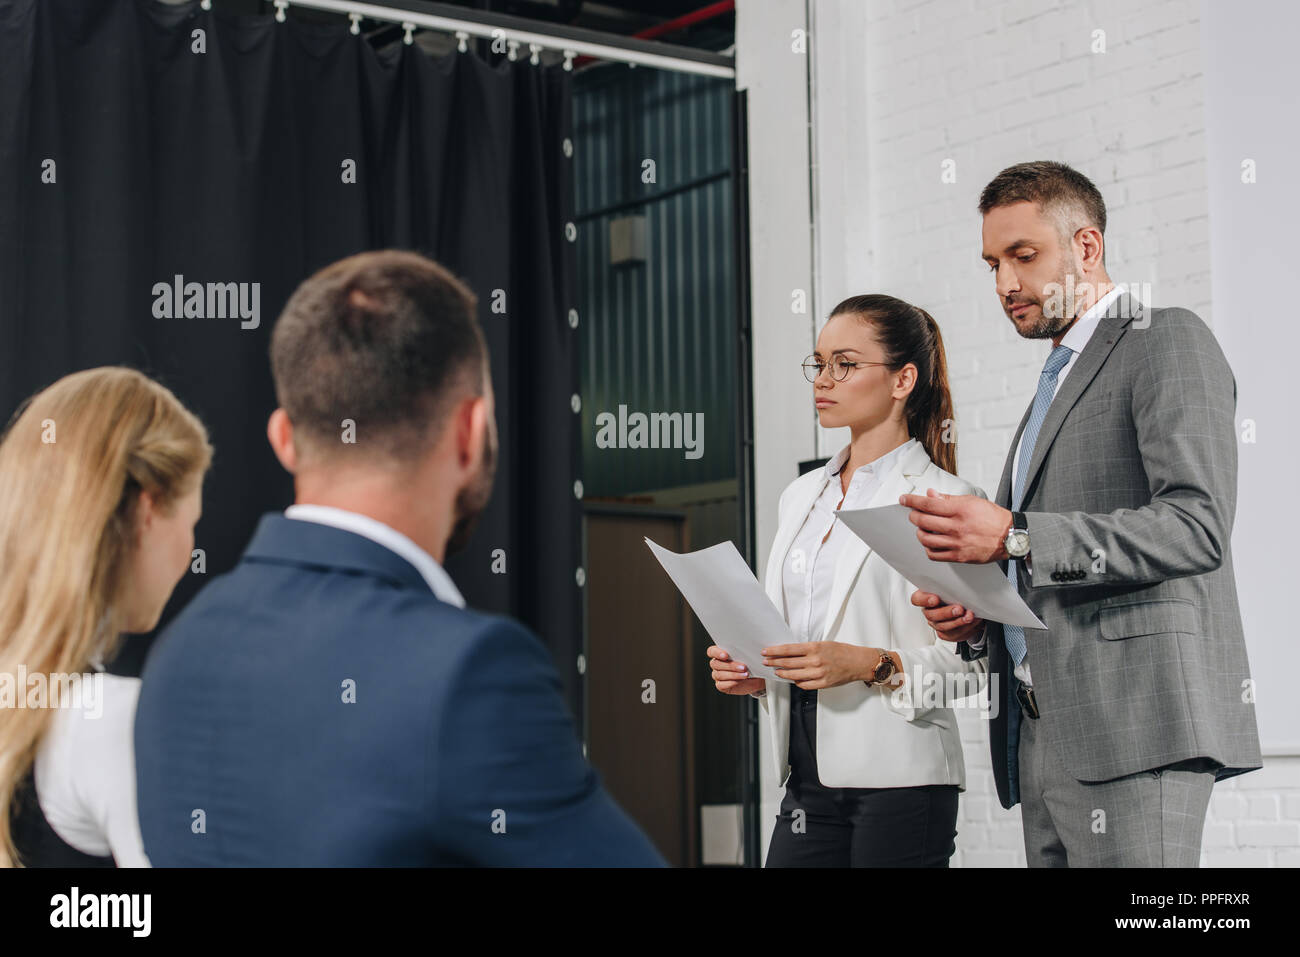 business trainers standing on stage with documents in hub - Stock Image